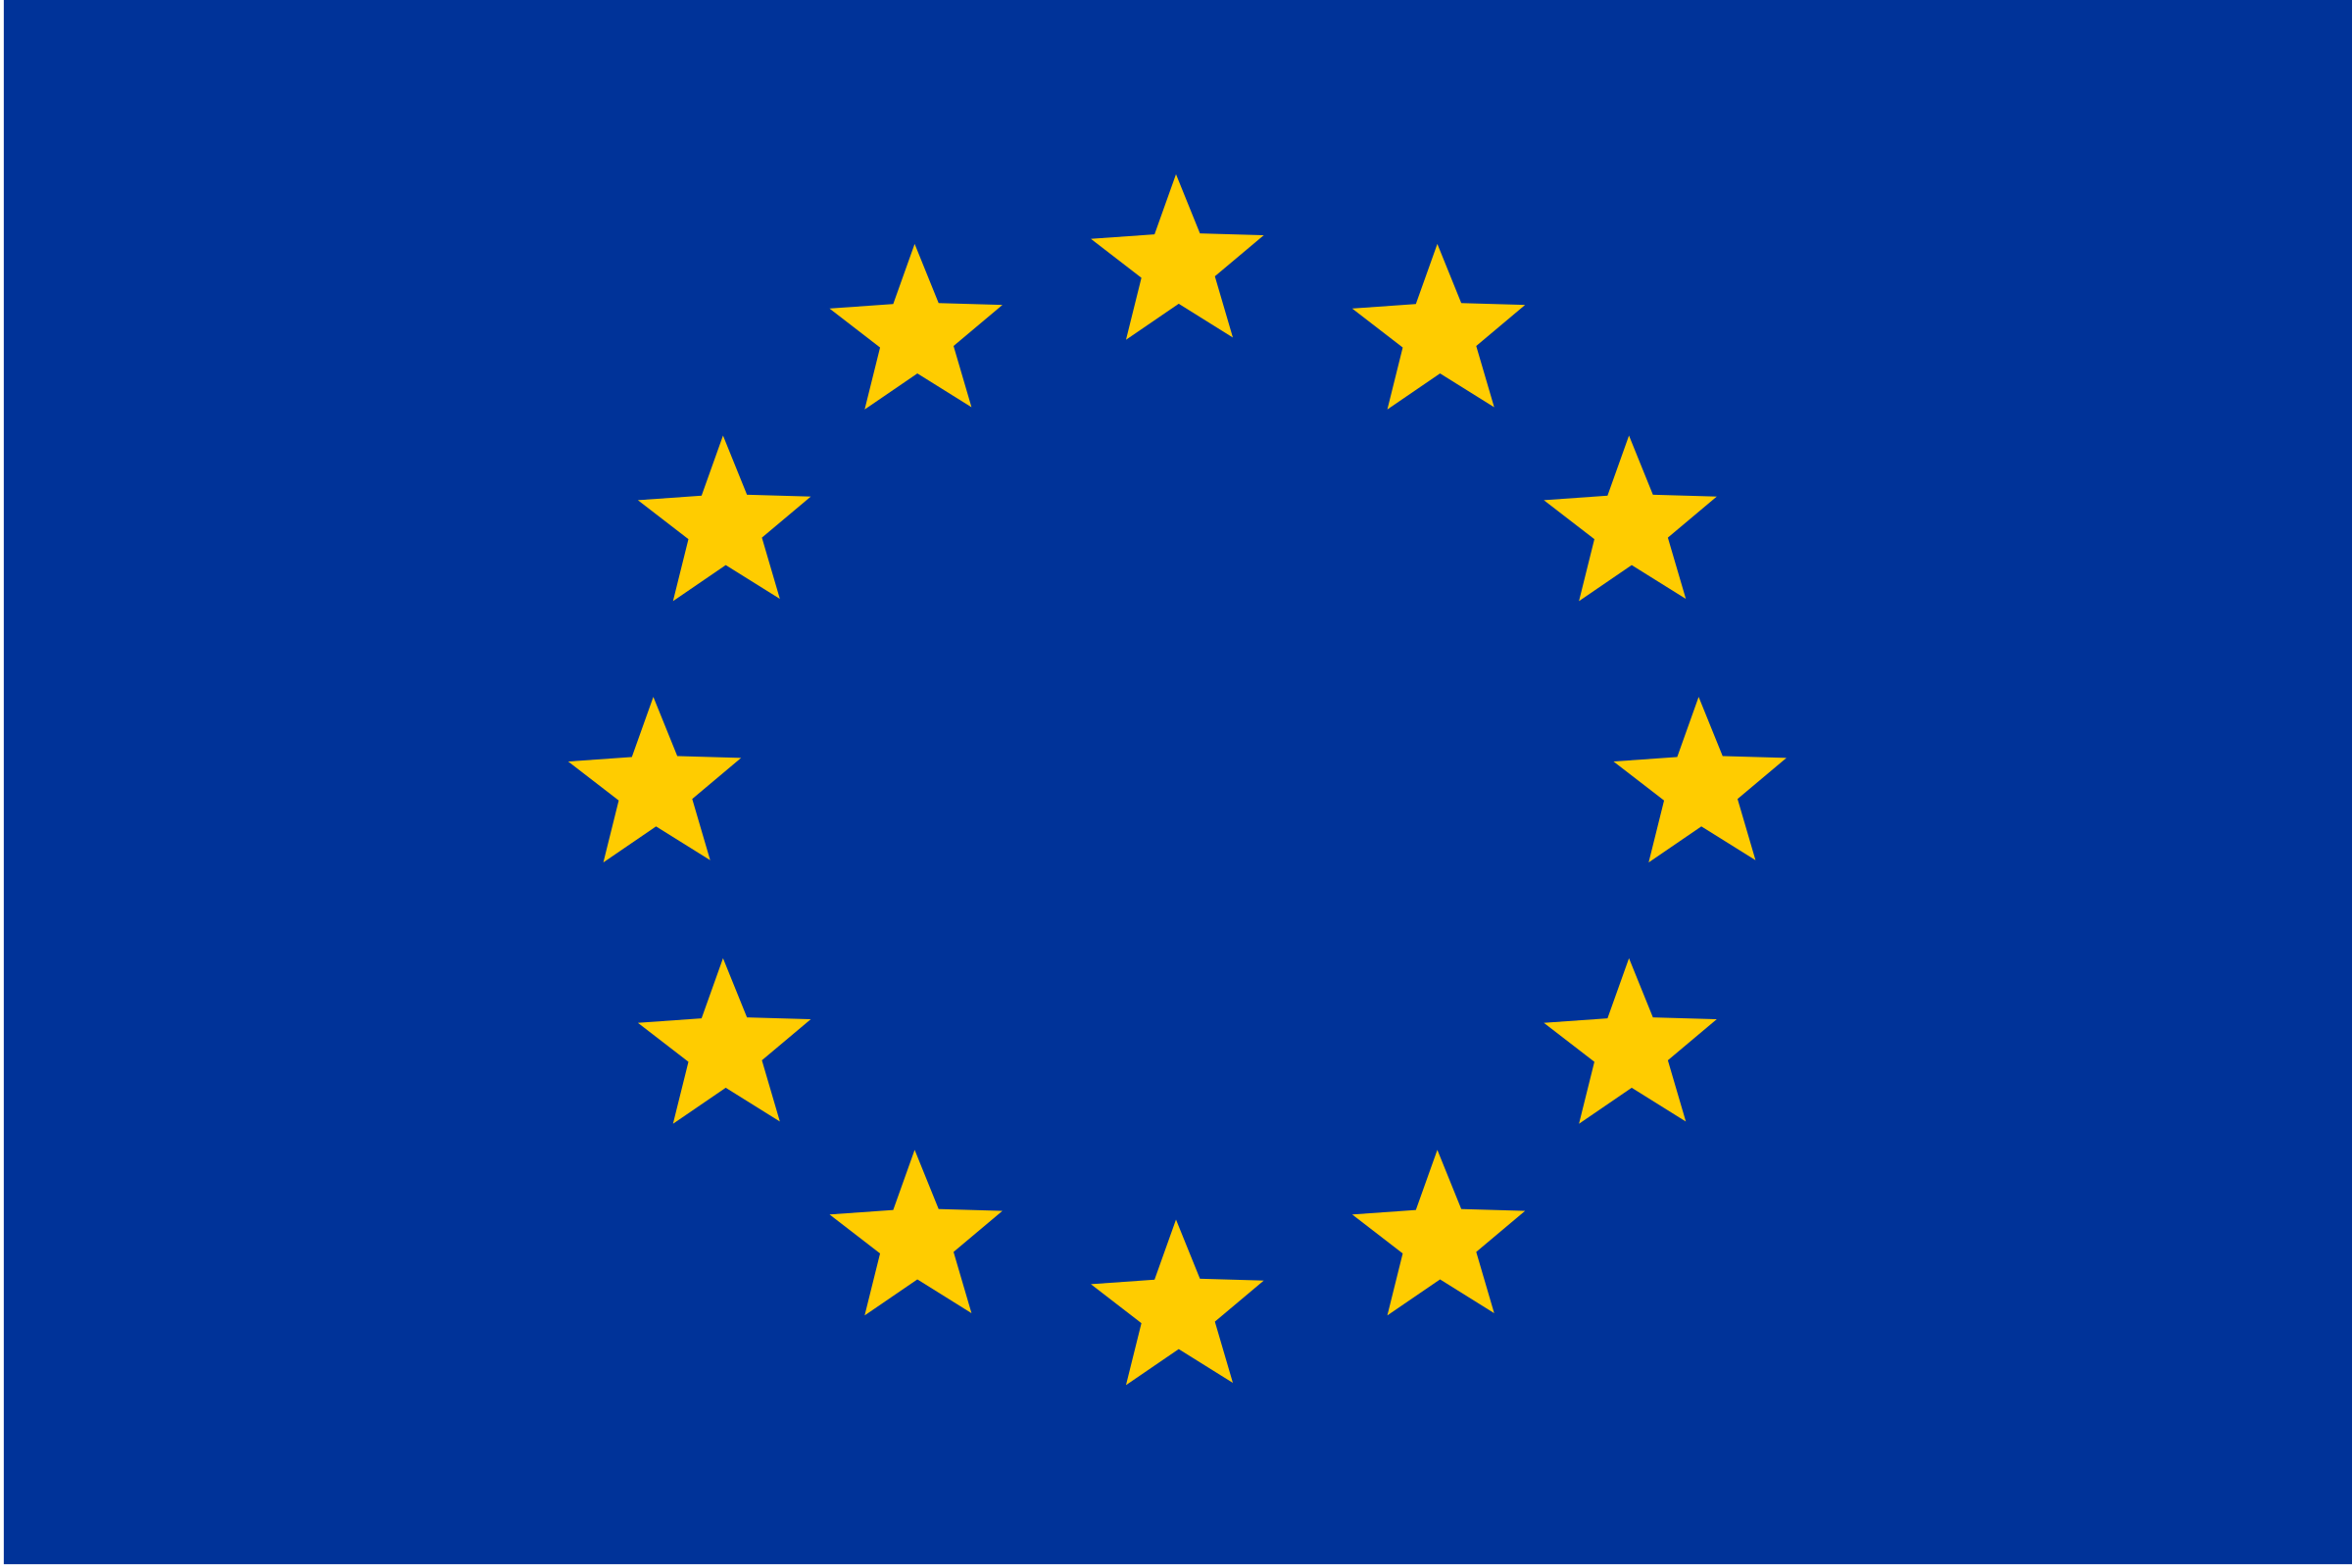 Flag of the European Union by jwp